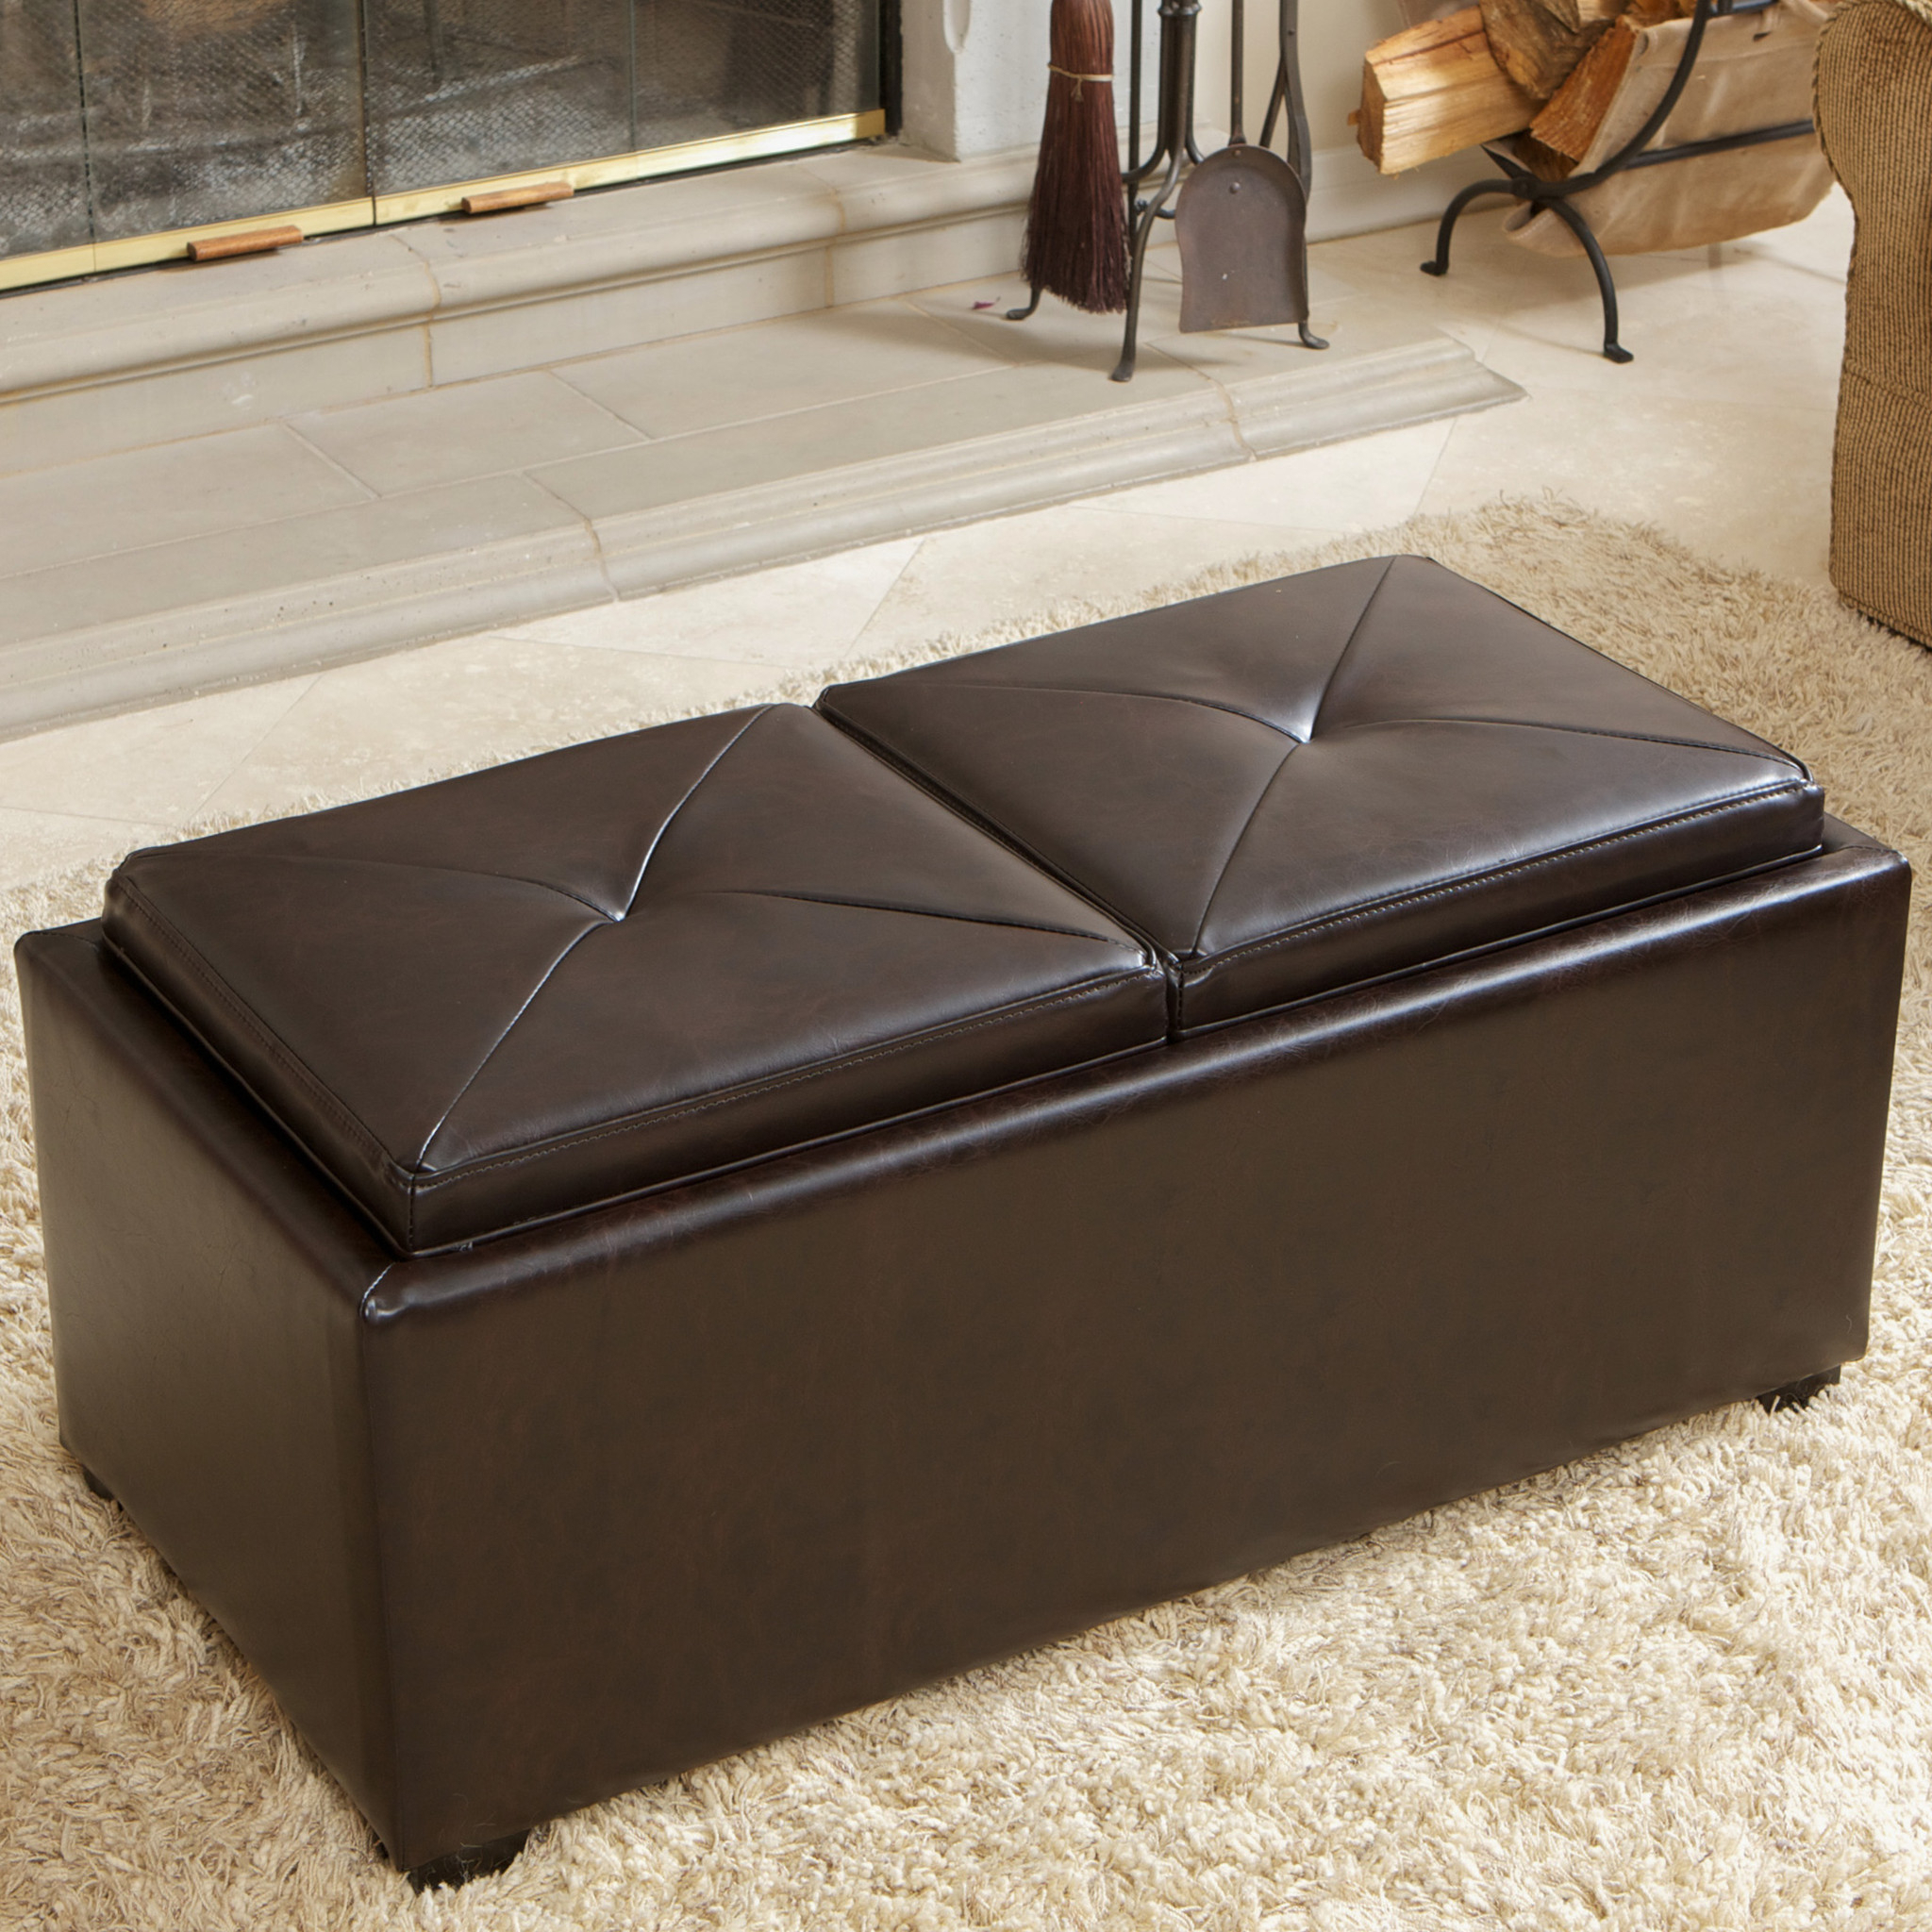 Mill Large Leather Coffee Tables With Regard To 2019 Coffee Tables : Mirrored Tray For Coffee Table Large Ottoman Tray (View 13 of 20)